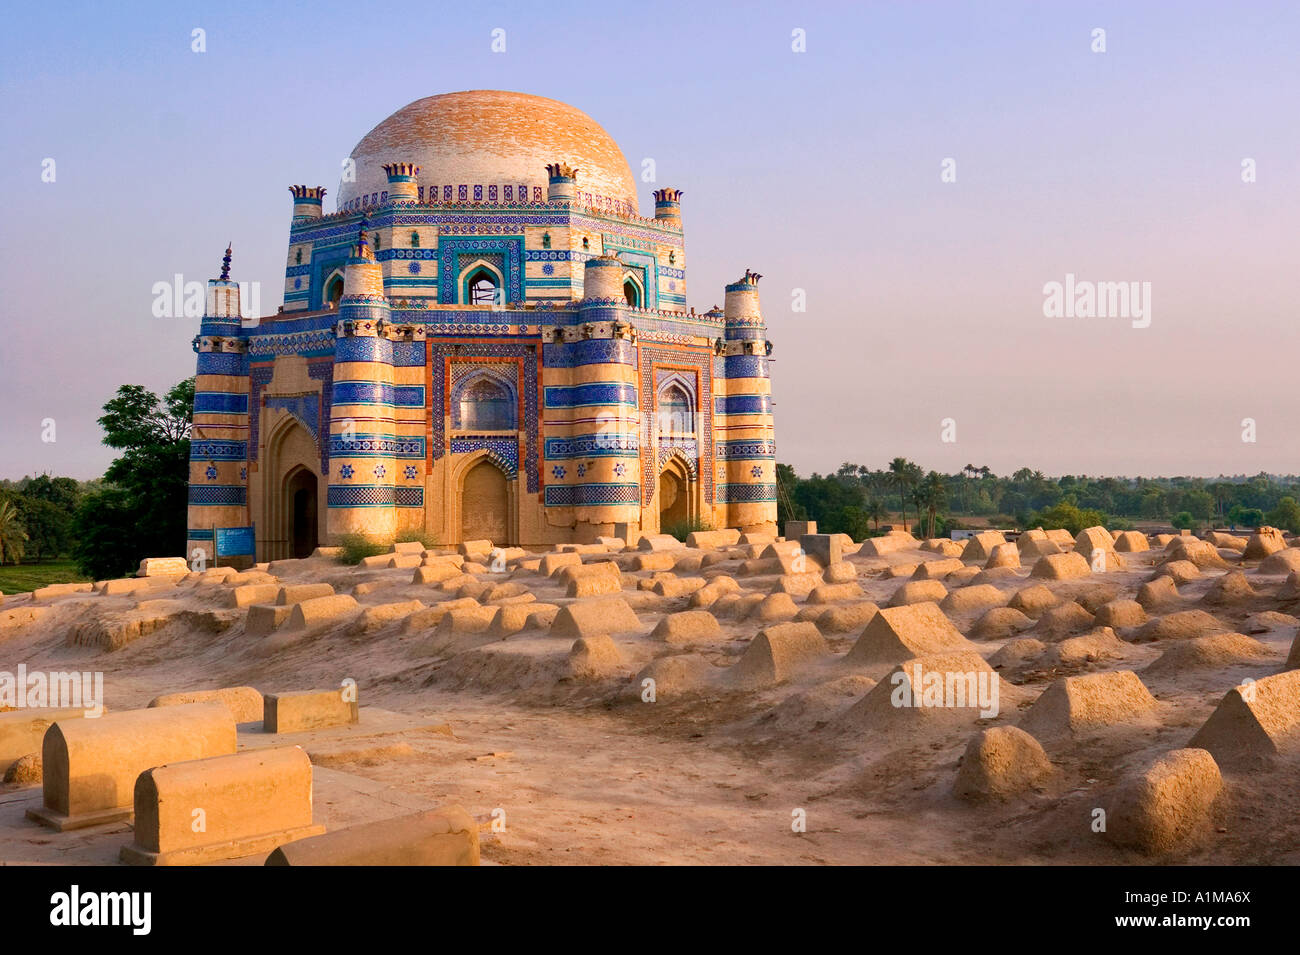 15th century Mausoleum of Bibi Jawindi, Uch Sharif, Pakistan - Stock Image